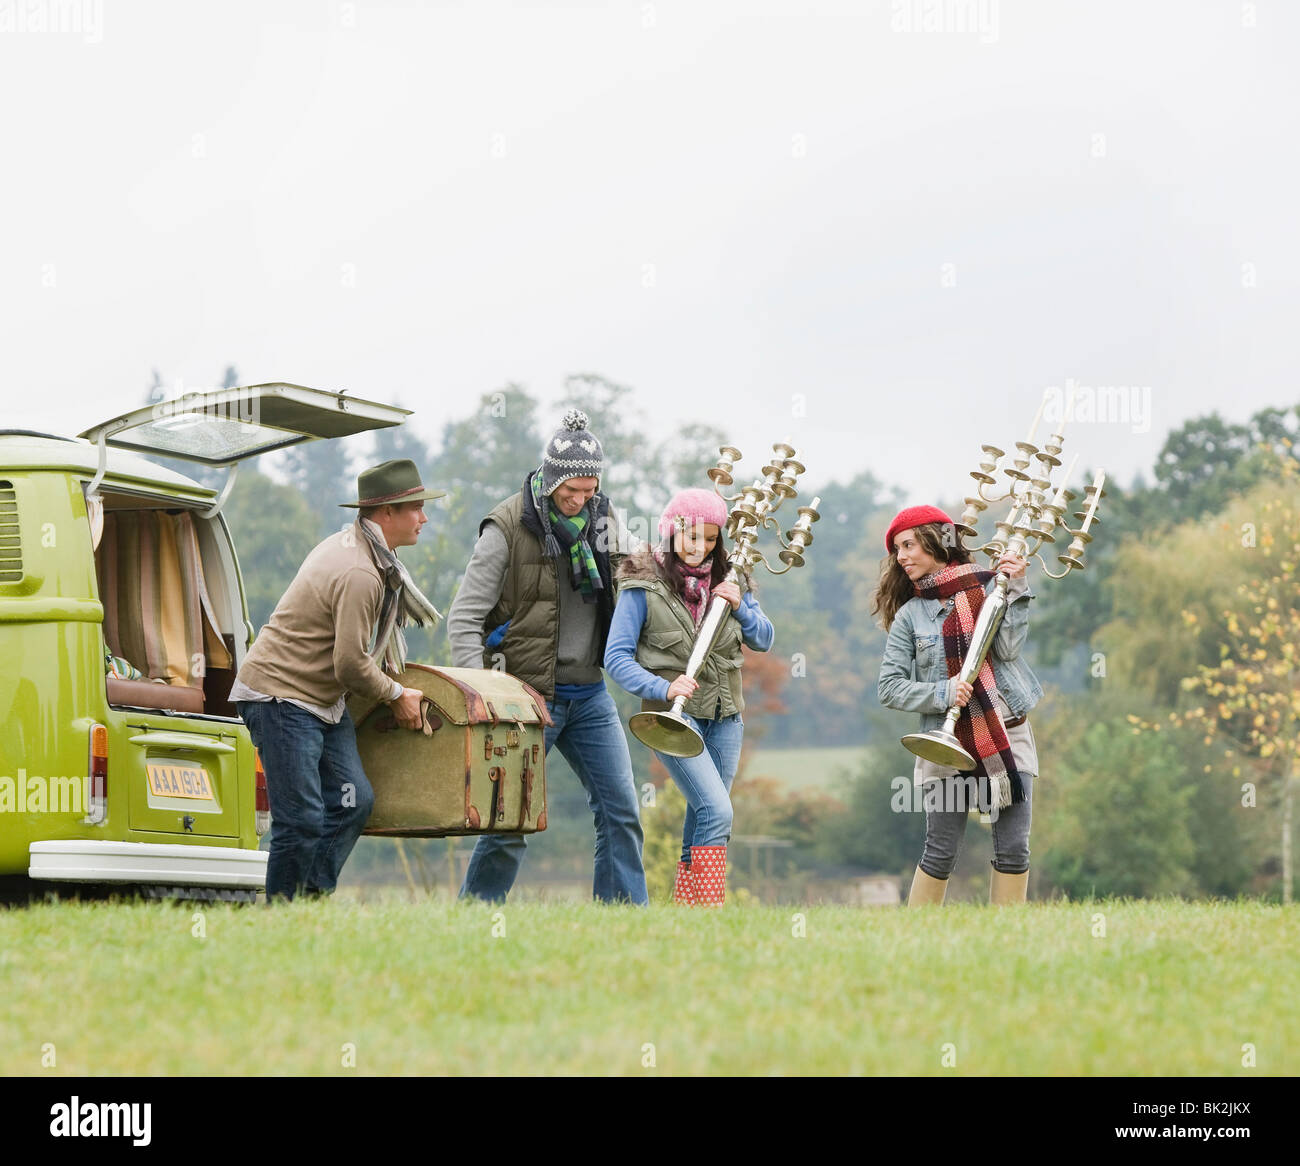 People unloading things from camping van Stock Photo